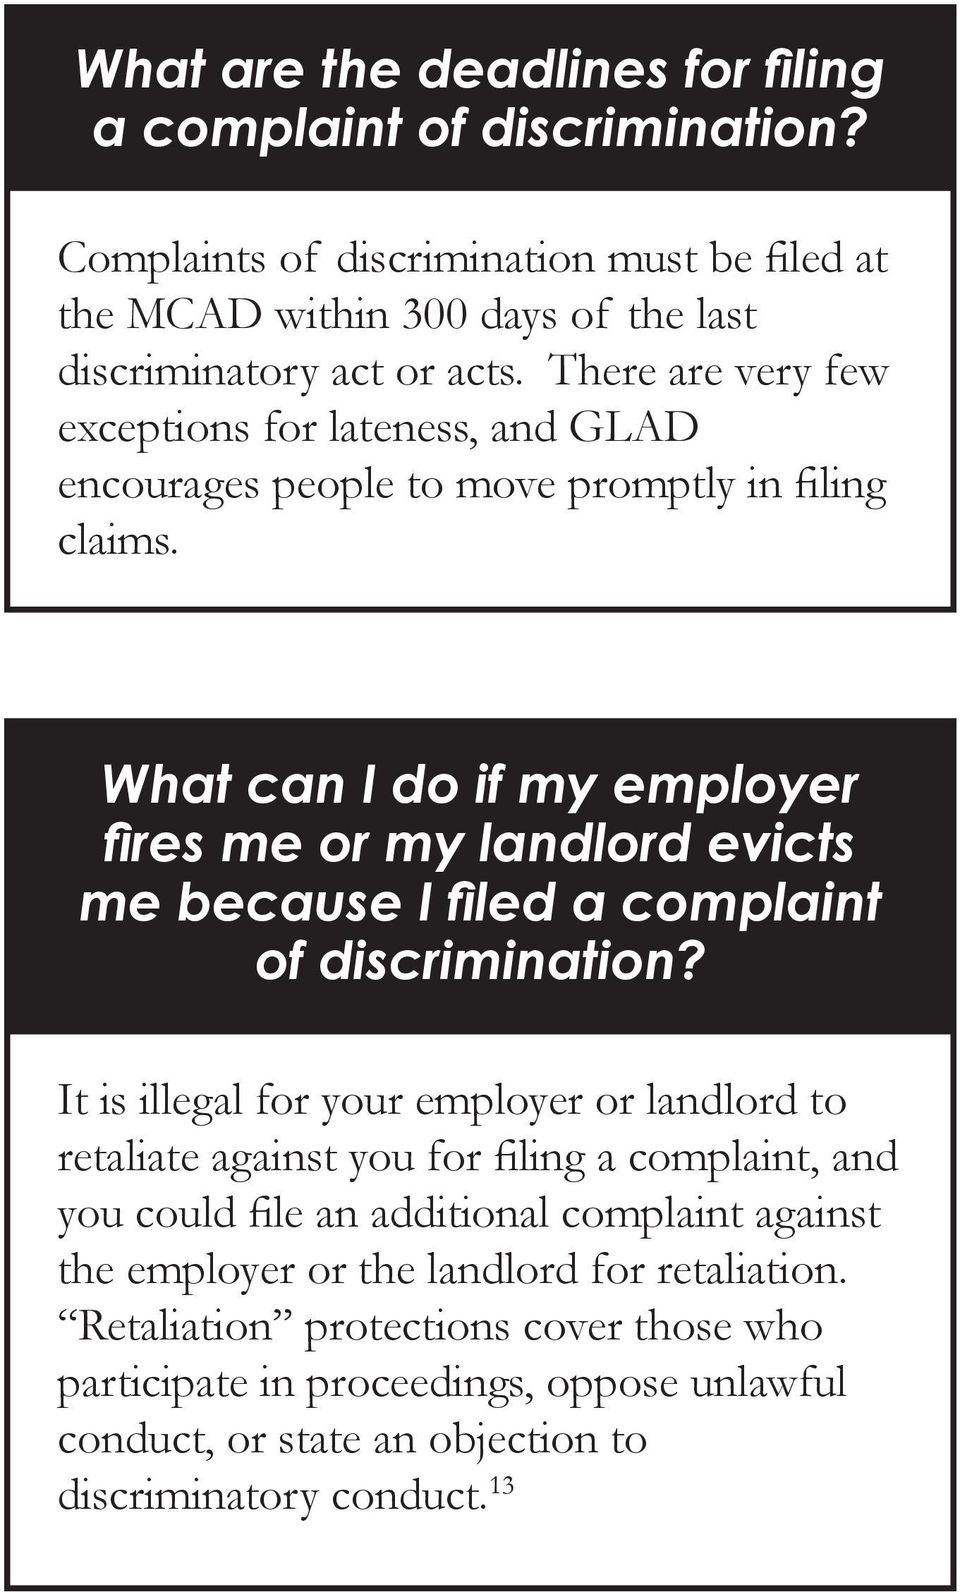 What can I do if my employer fires me or my landlord evicts me because I filed a complaint of discrimination?